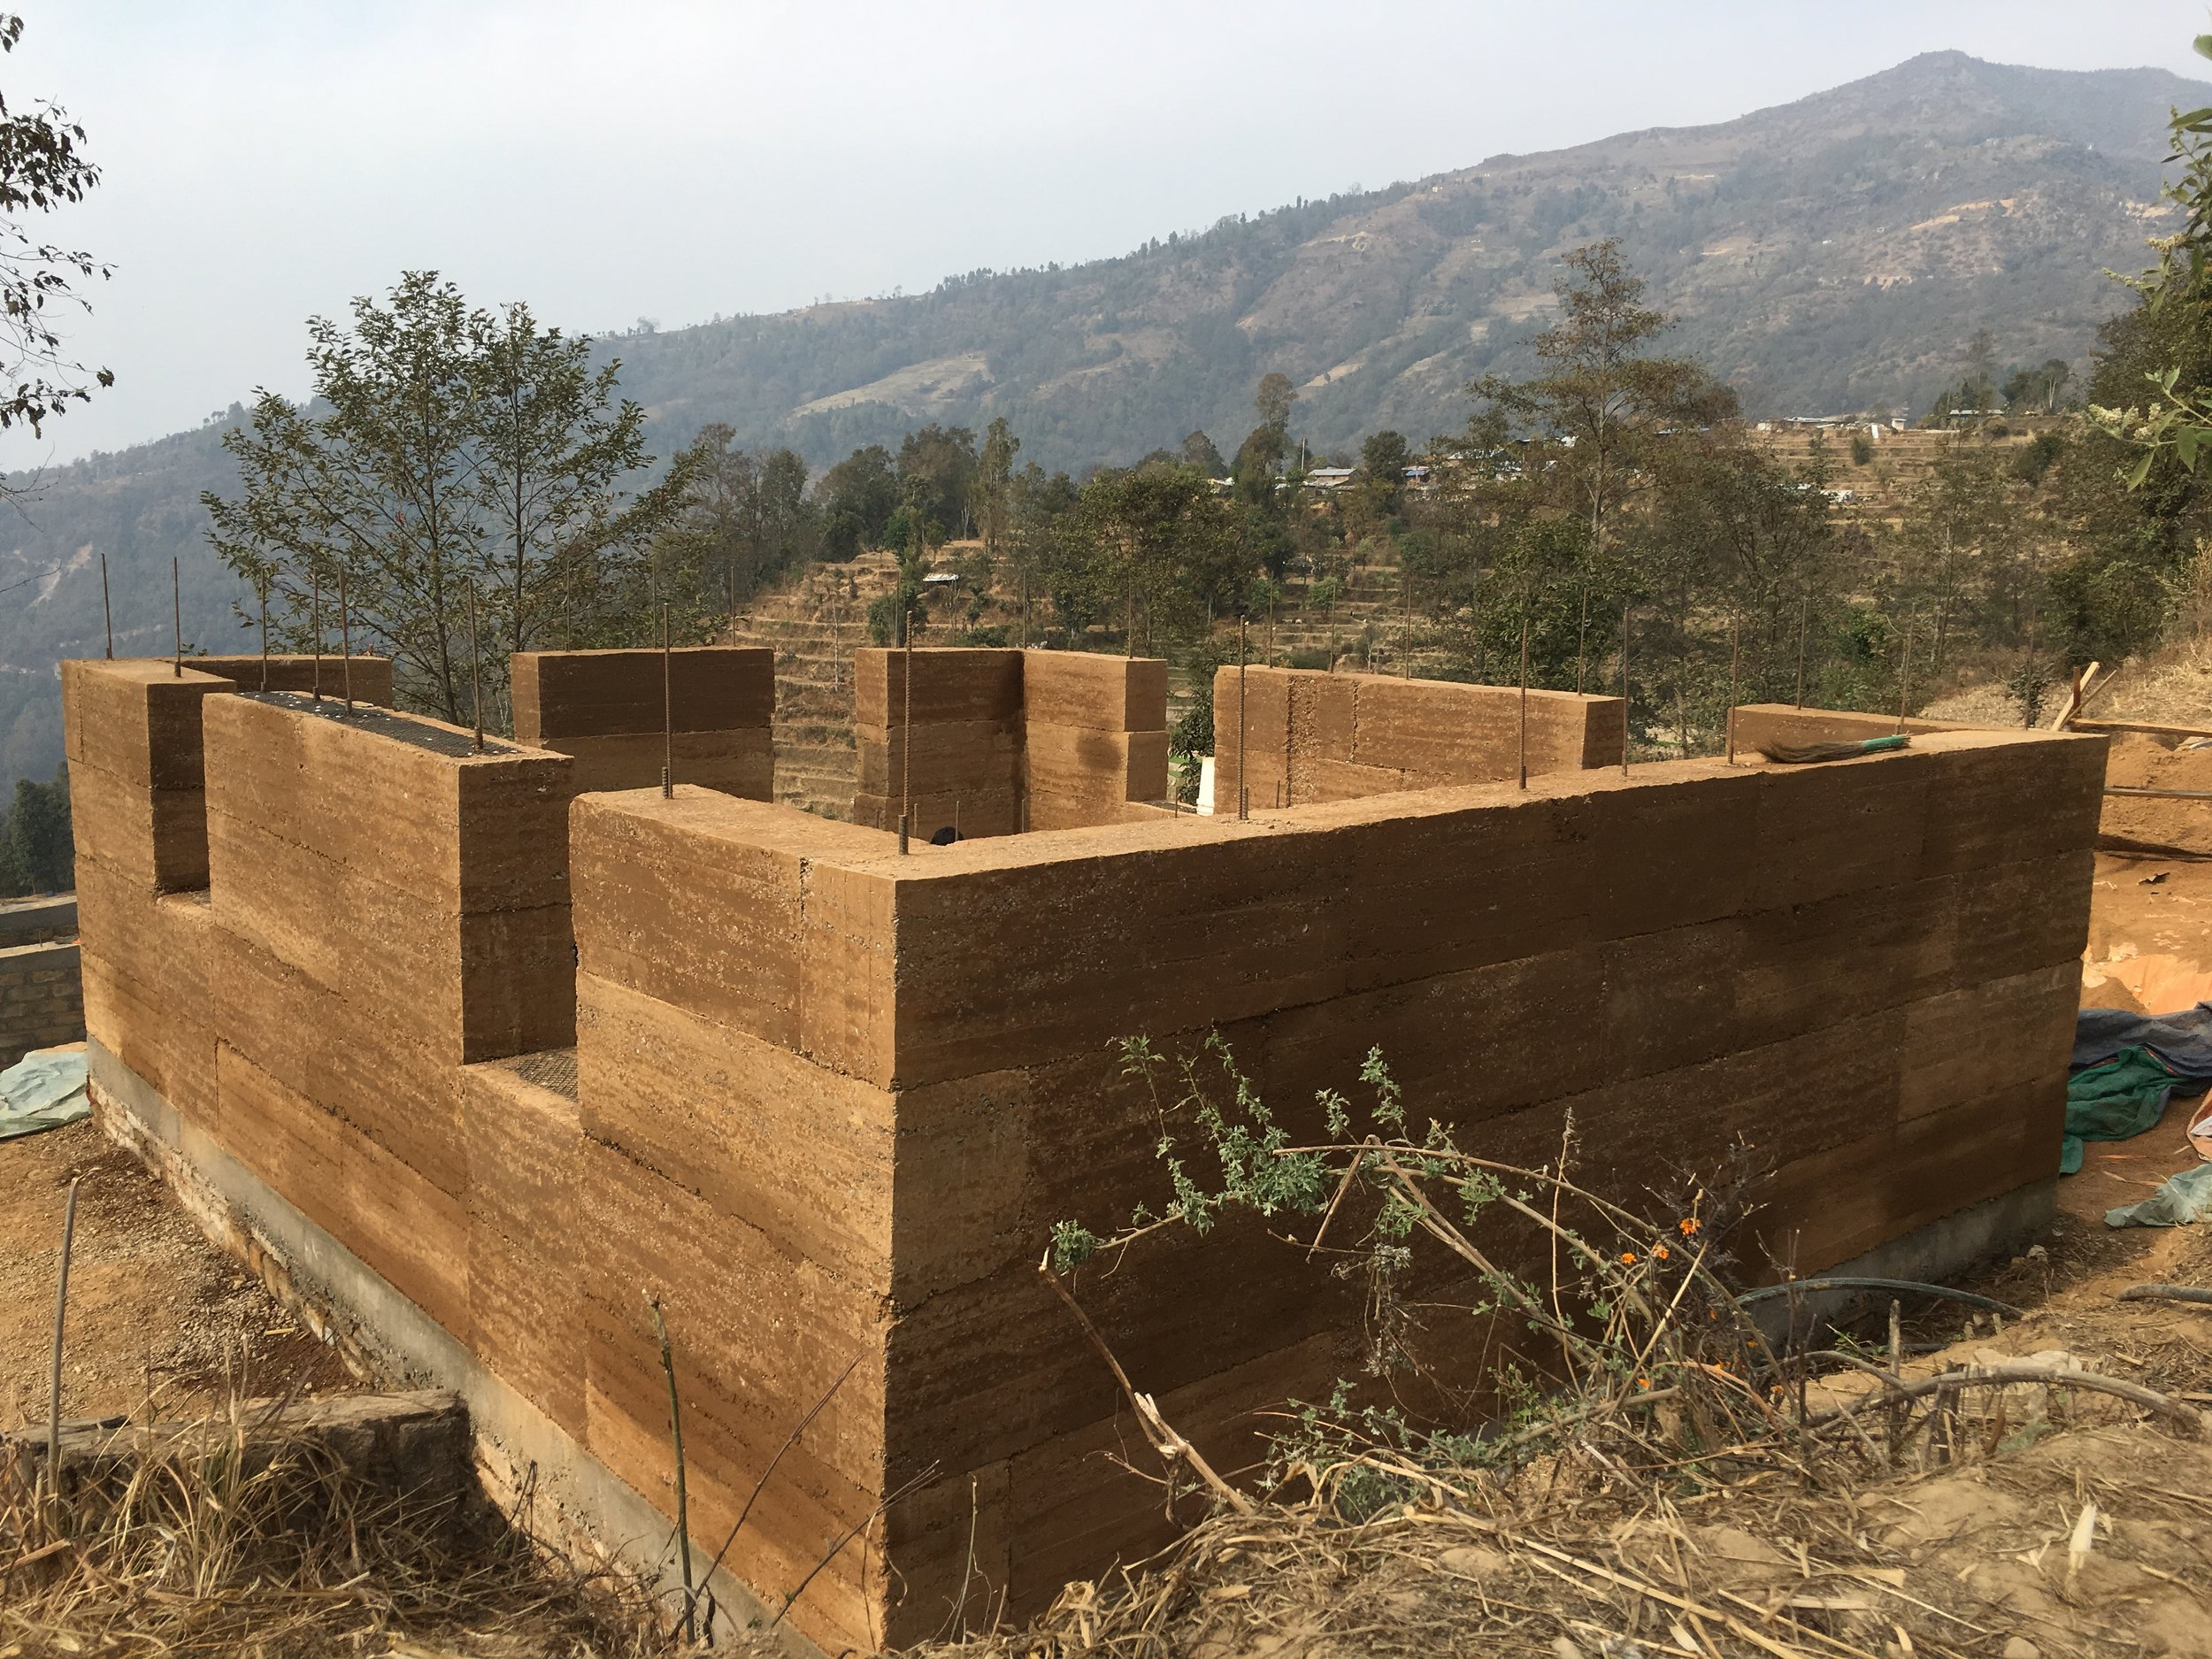 The completed ramed earth walls. Photo: Oliver James Atwood